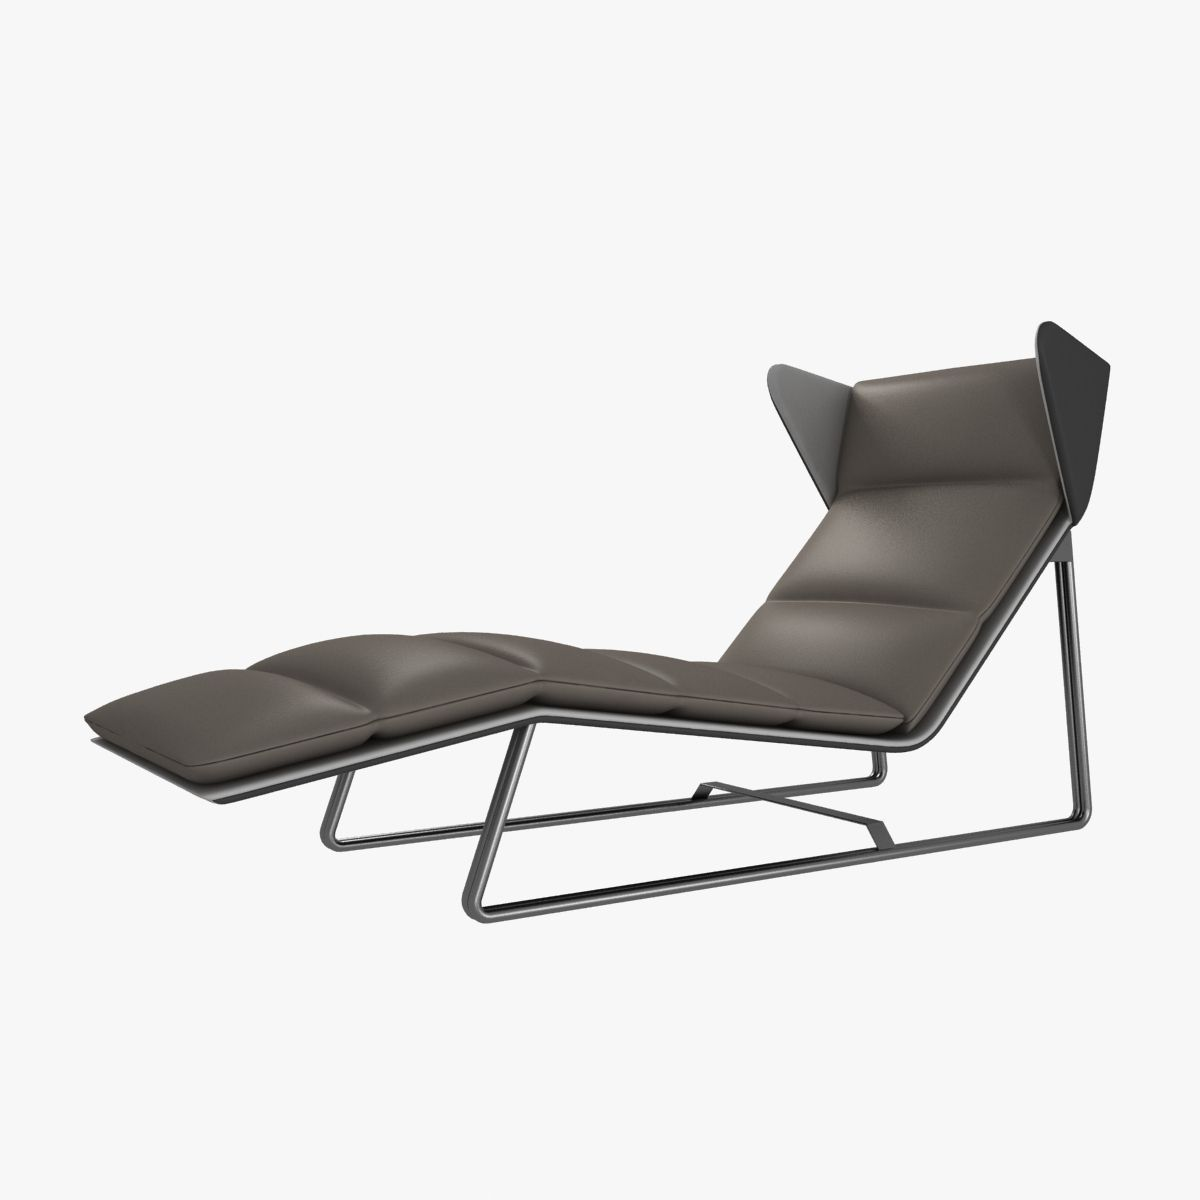 Chaiselongue Modern esedra romea modern chaise lounge 3d model cgtrader